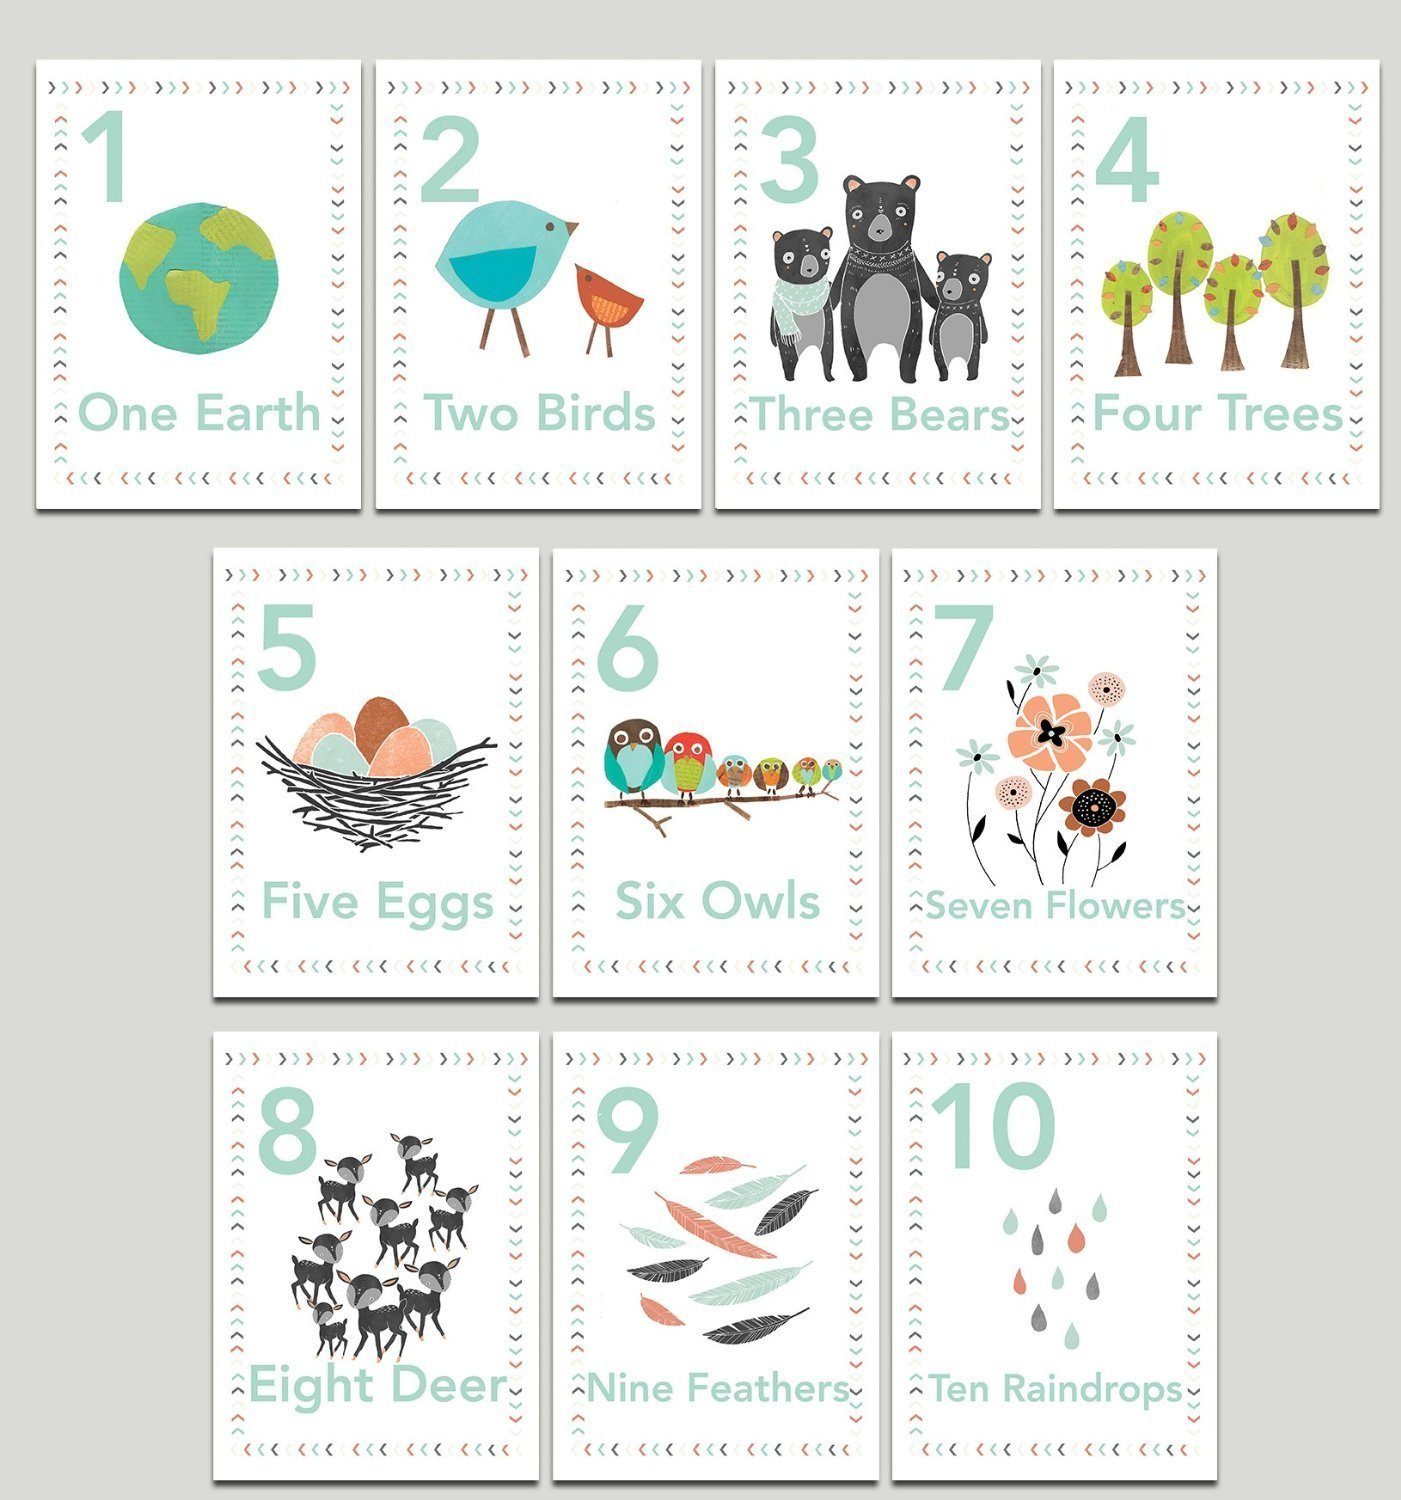 Our Earth Counting Wall Cards in English, Number Flash Cards, Set of Ten 5x7 Wall Art Prints, Nursery Wall Art Decor, Kid's Art Decor, Gender Neutral Nursery, Nature Themed, Woodland Nursery, Playroom